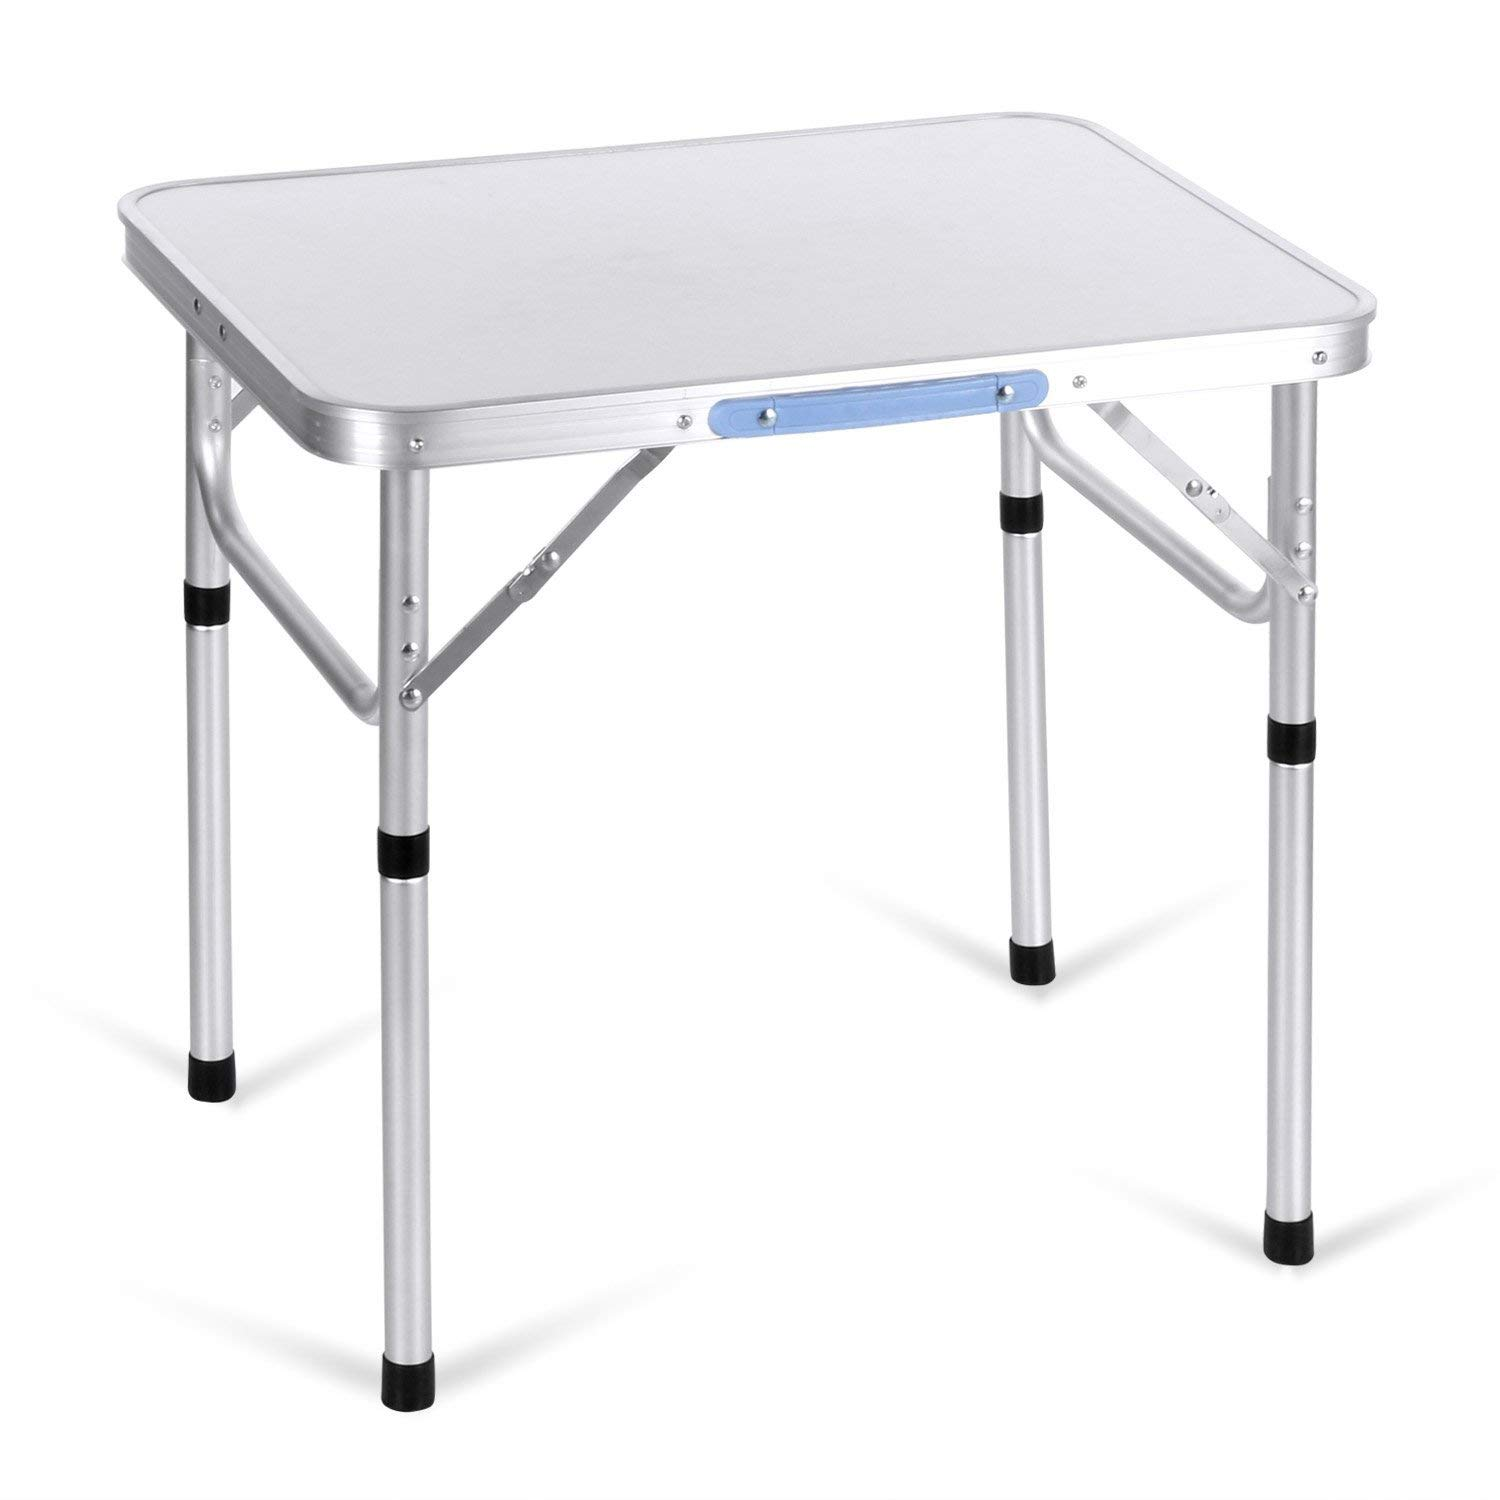 Get Quotations  C2 B7 Moroly Aluminum Portable Folding Camping Table With Carrying Handle For Camping Picnic Working